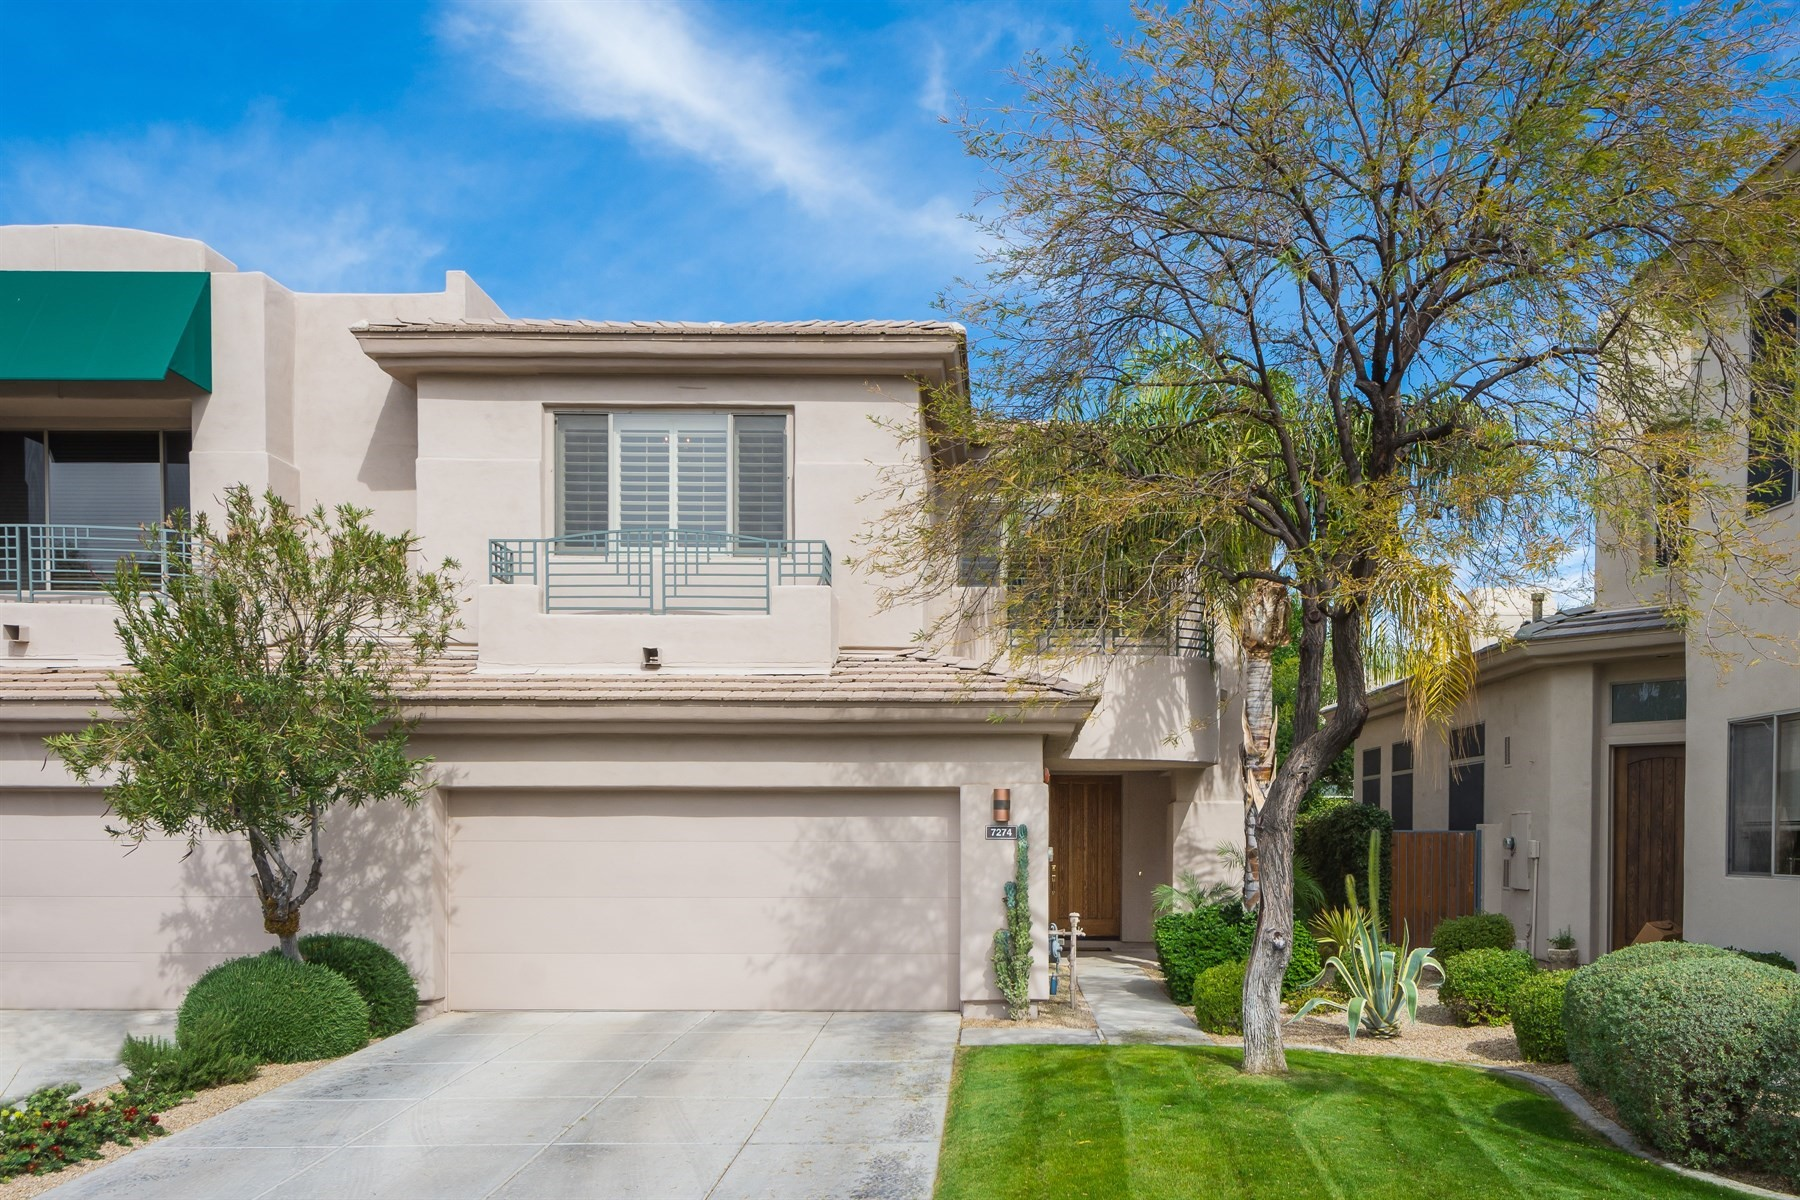 Таунхаус для того Продажа на Meticulously maintained home in the heart of Scottsdale 7274 E Del Acero Drive Scottsdale, Аризона, 85258 Соединенные Штаты